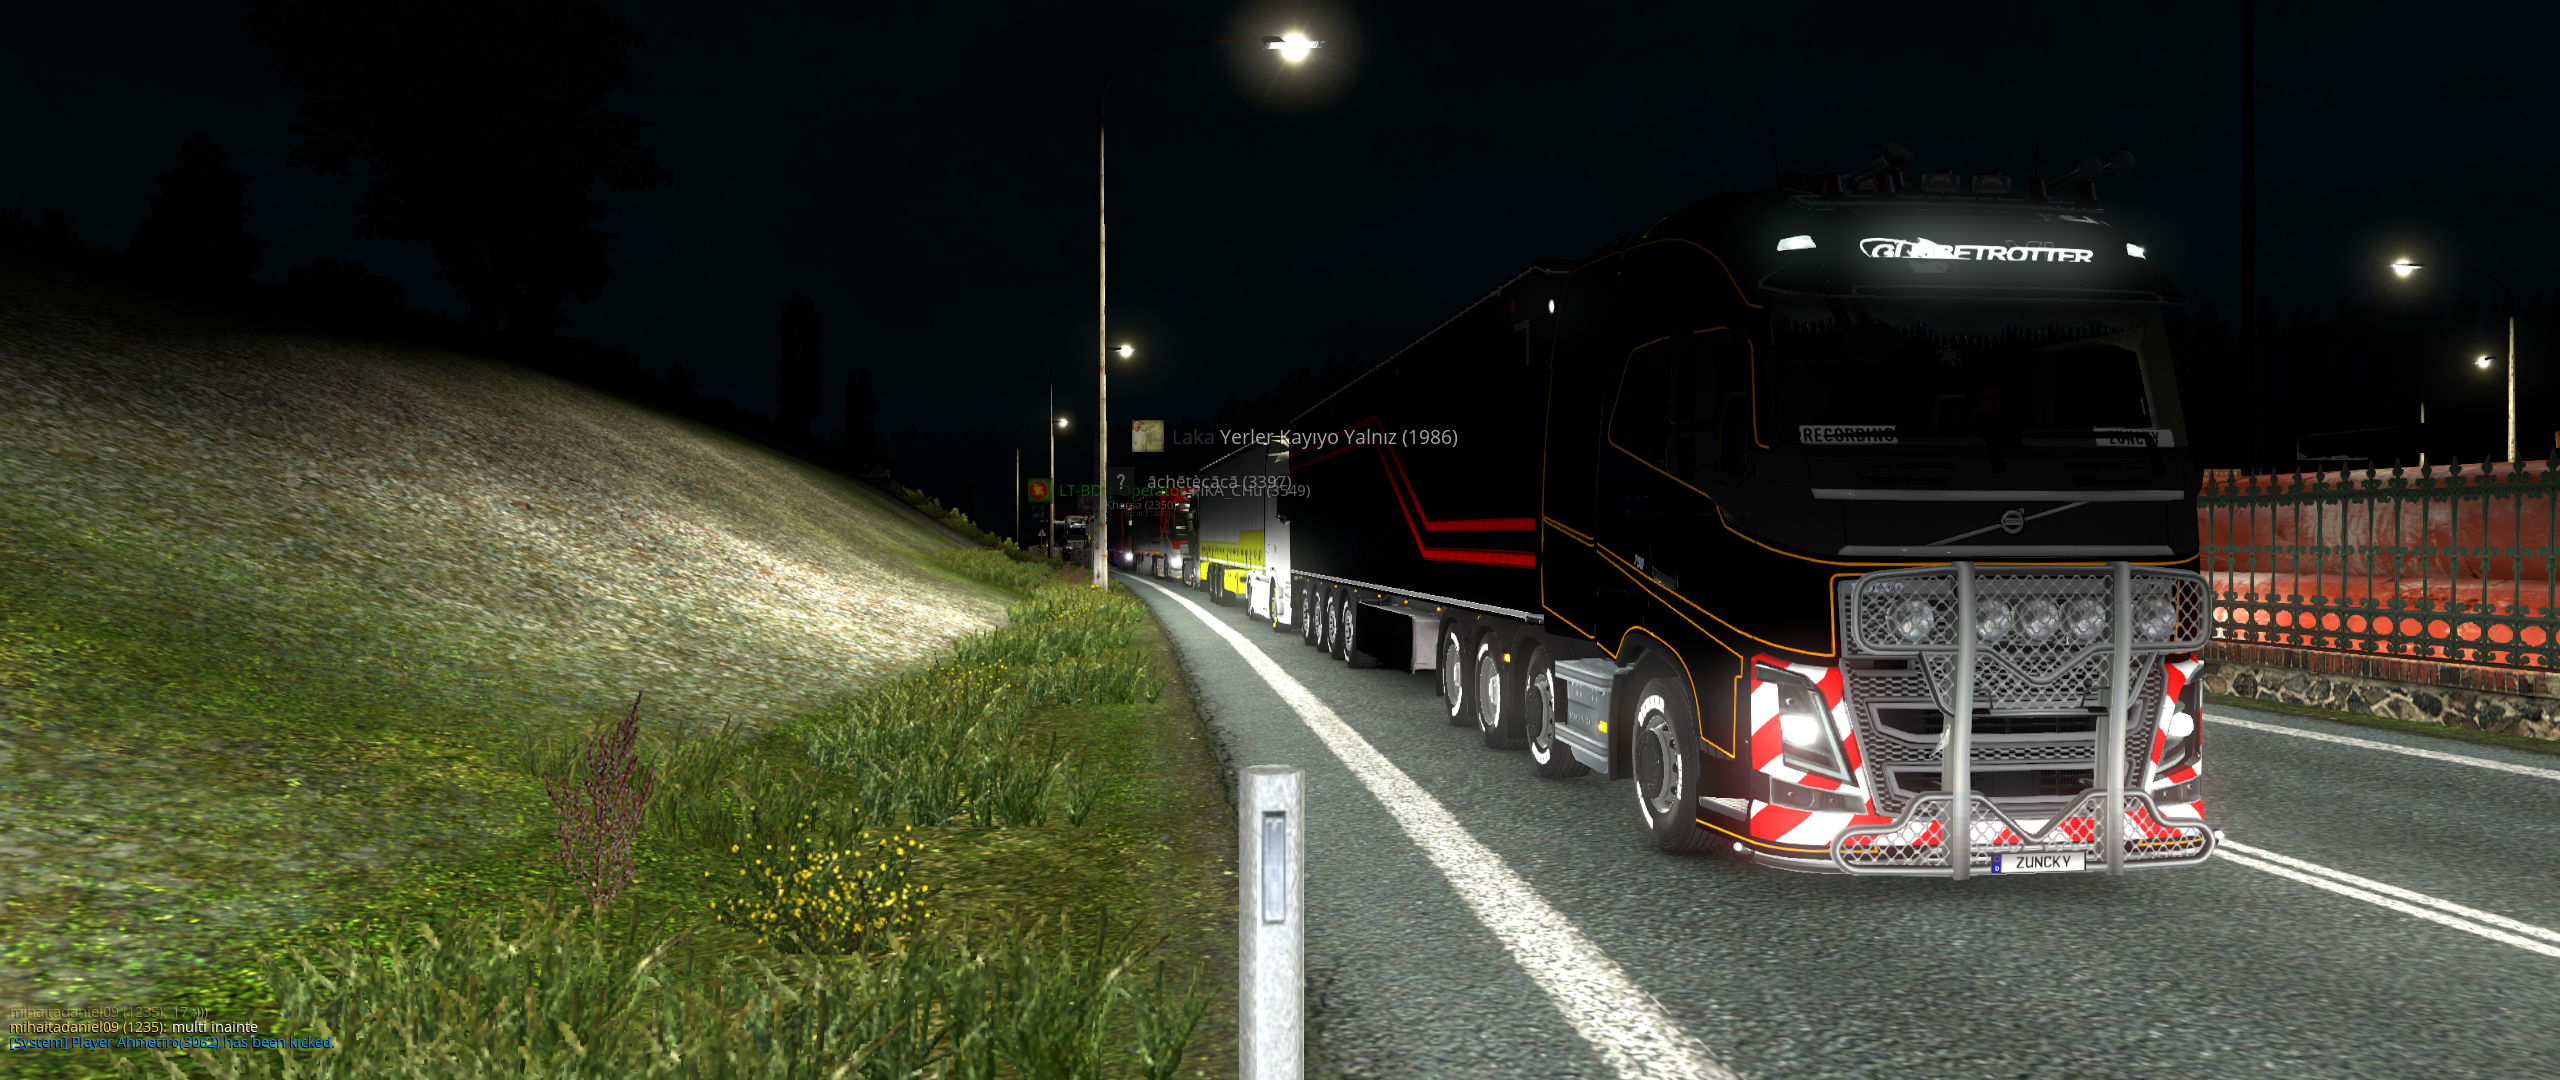 ets2_20190109_201146_00.png